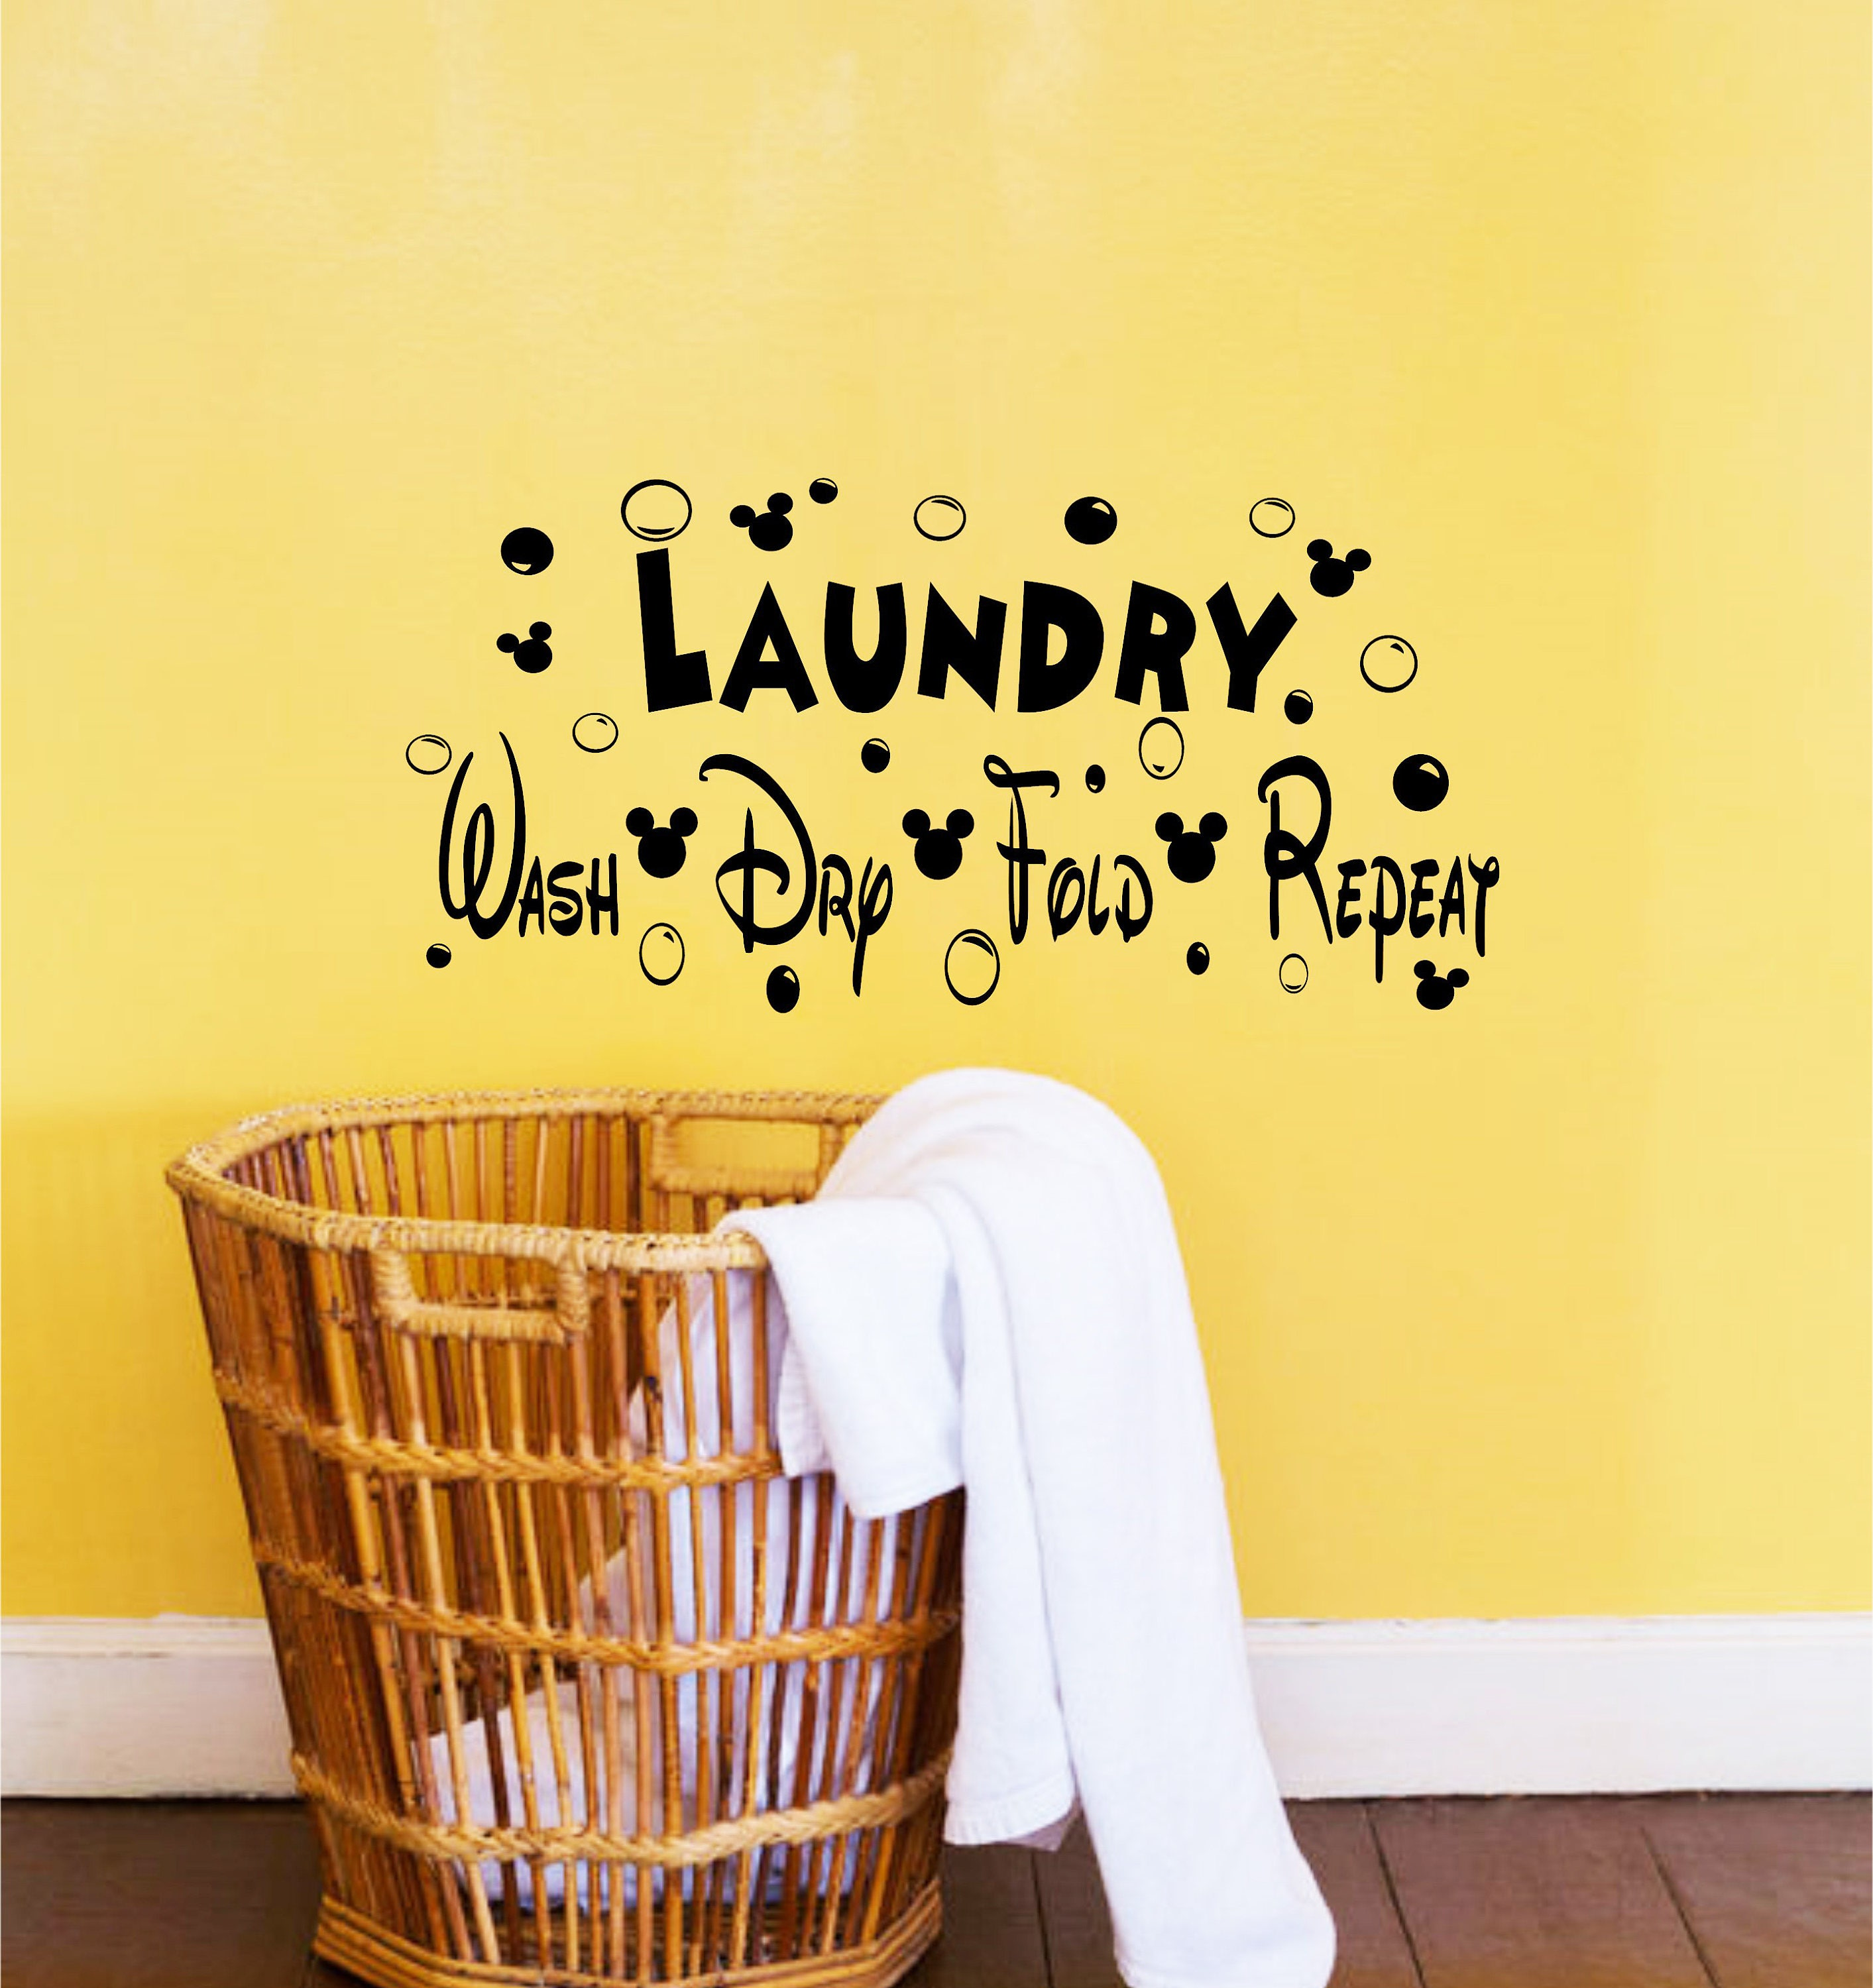 Disney Decor-Disney Decals-Laundry Room Decor-Wash Dry Fold